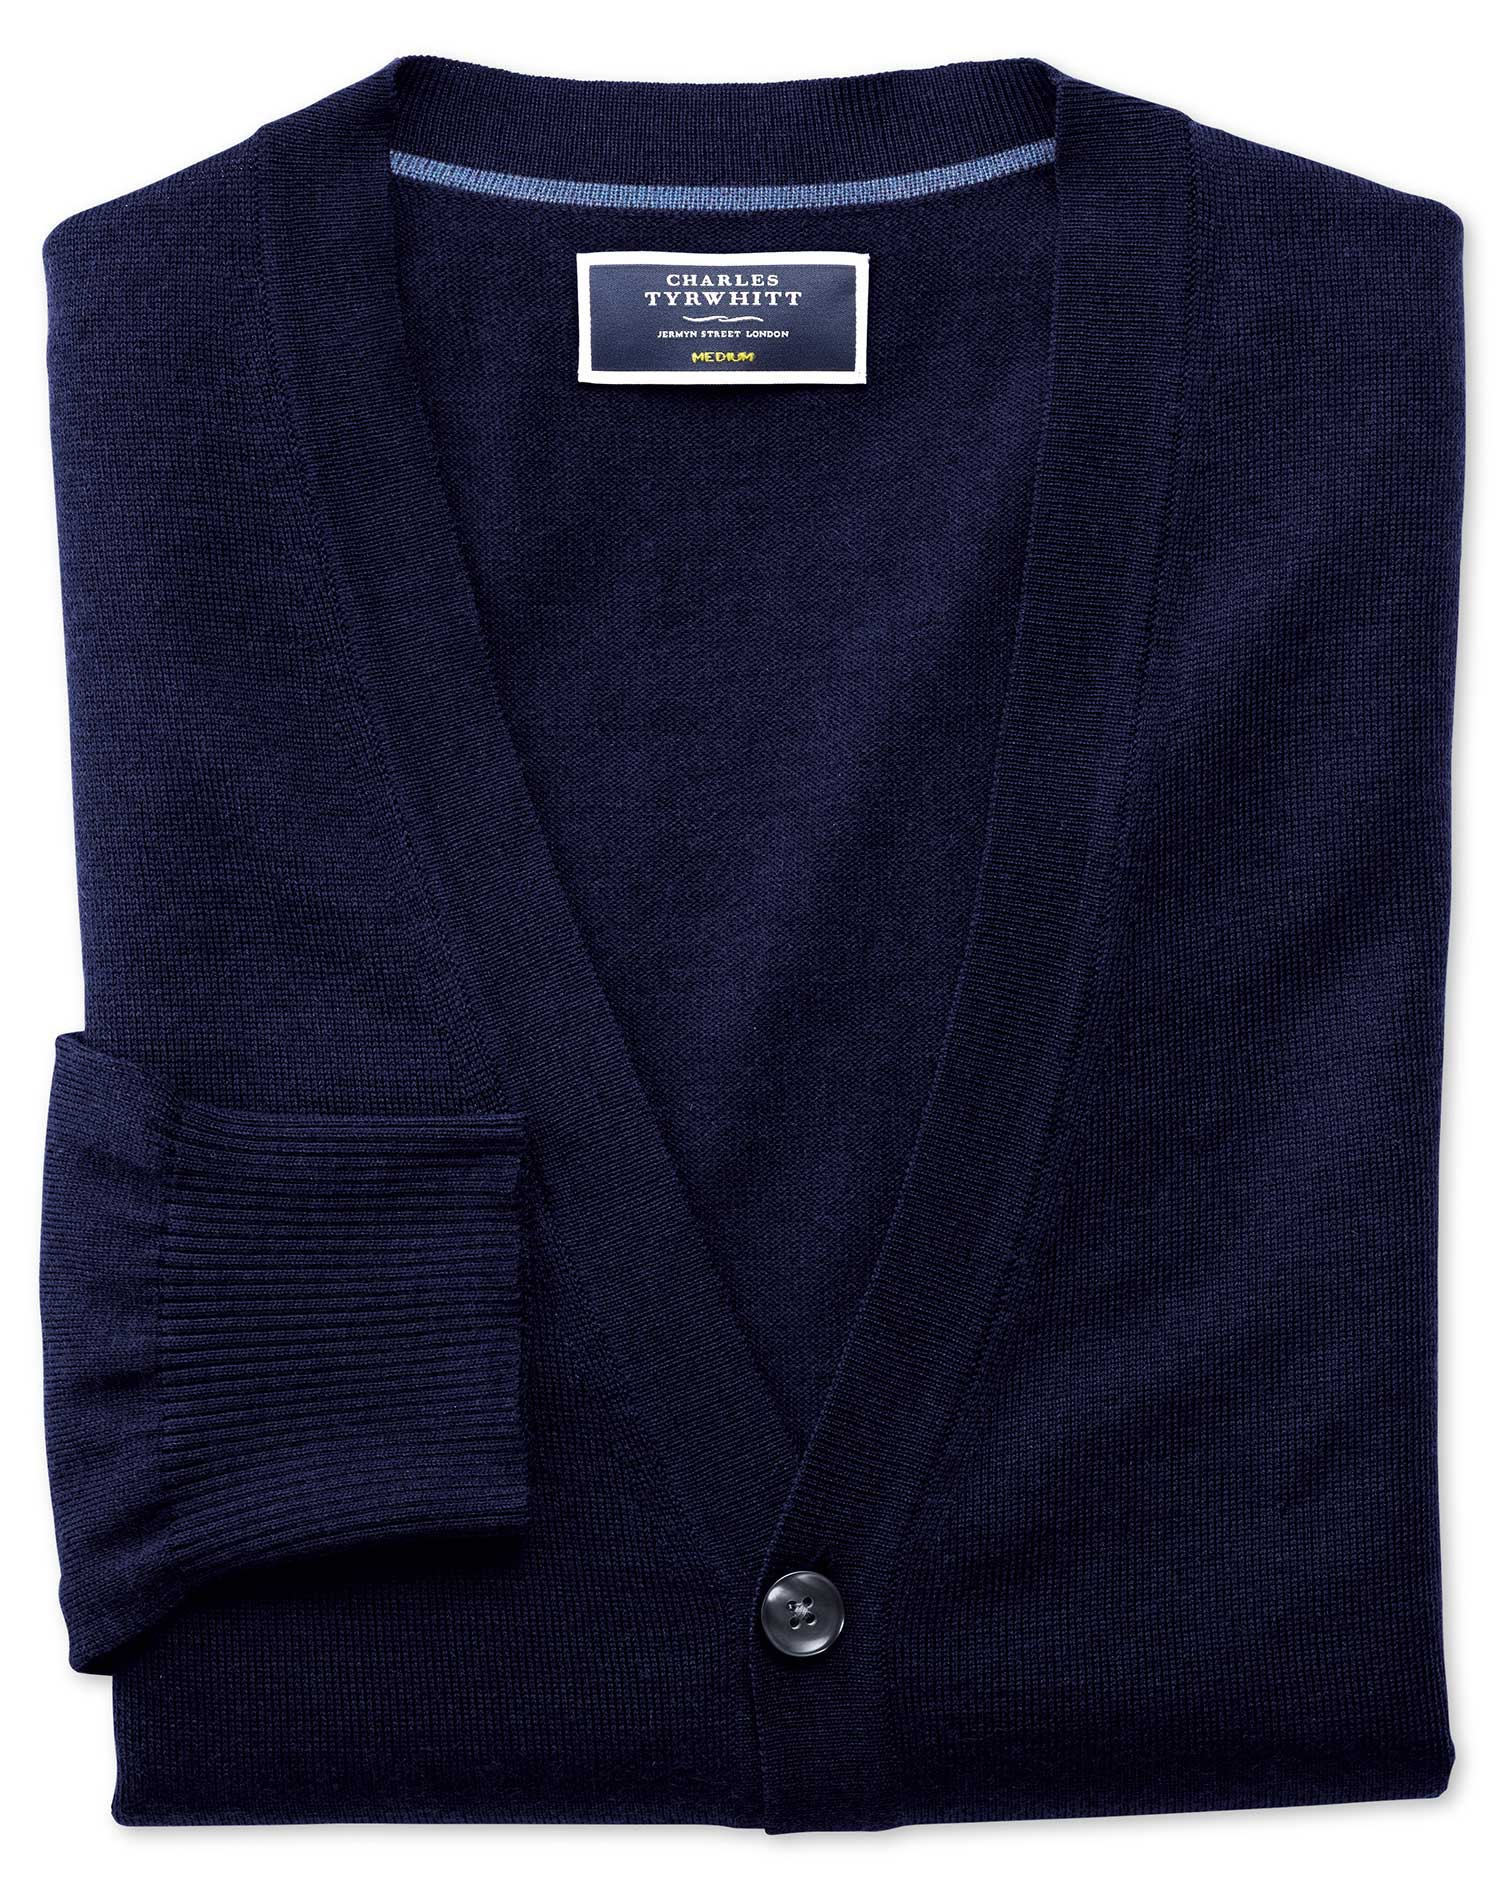 Navy Merino Wool Cardigan Size Medium by Charles Tyrwhitt